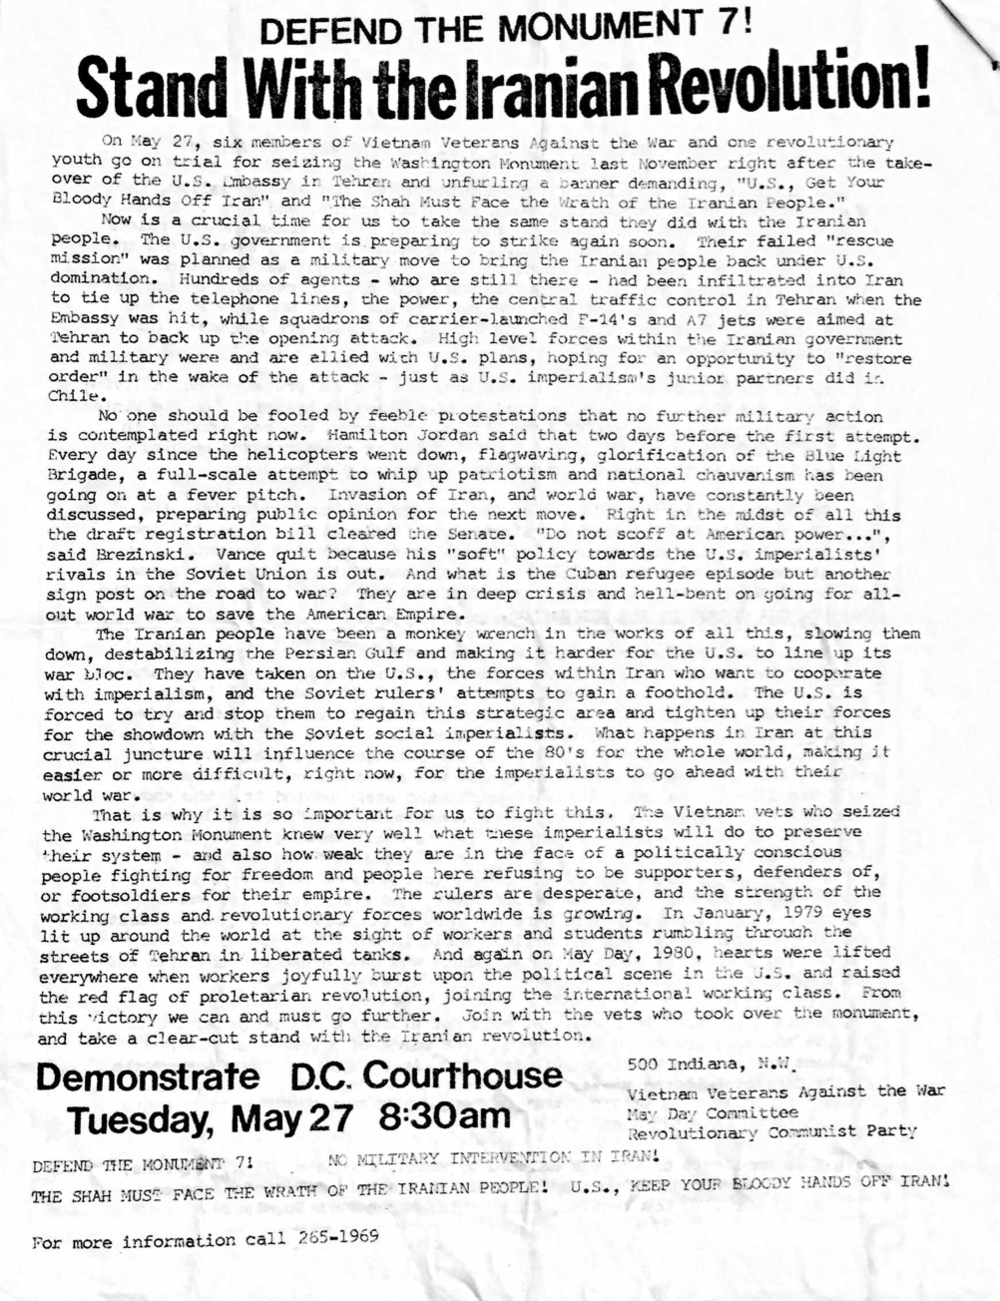 Defend the Monument 7! Stand with the Iranian Revolution!,James F. Hitselberger collection, Box 1, Hoover Institution Archives